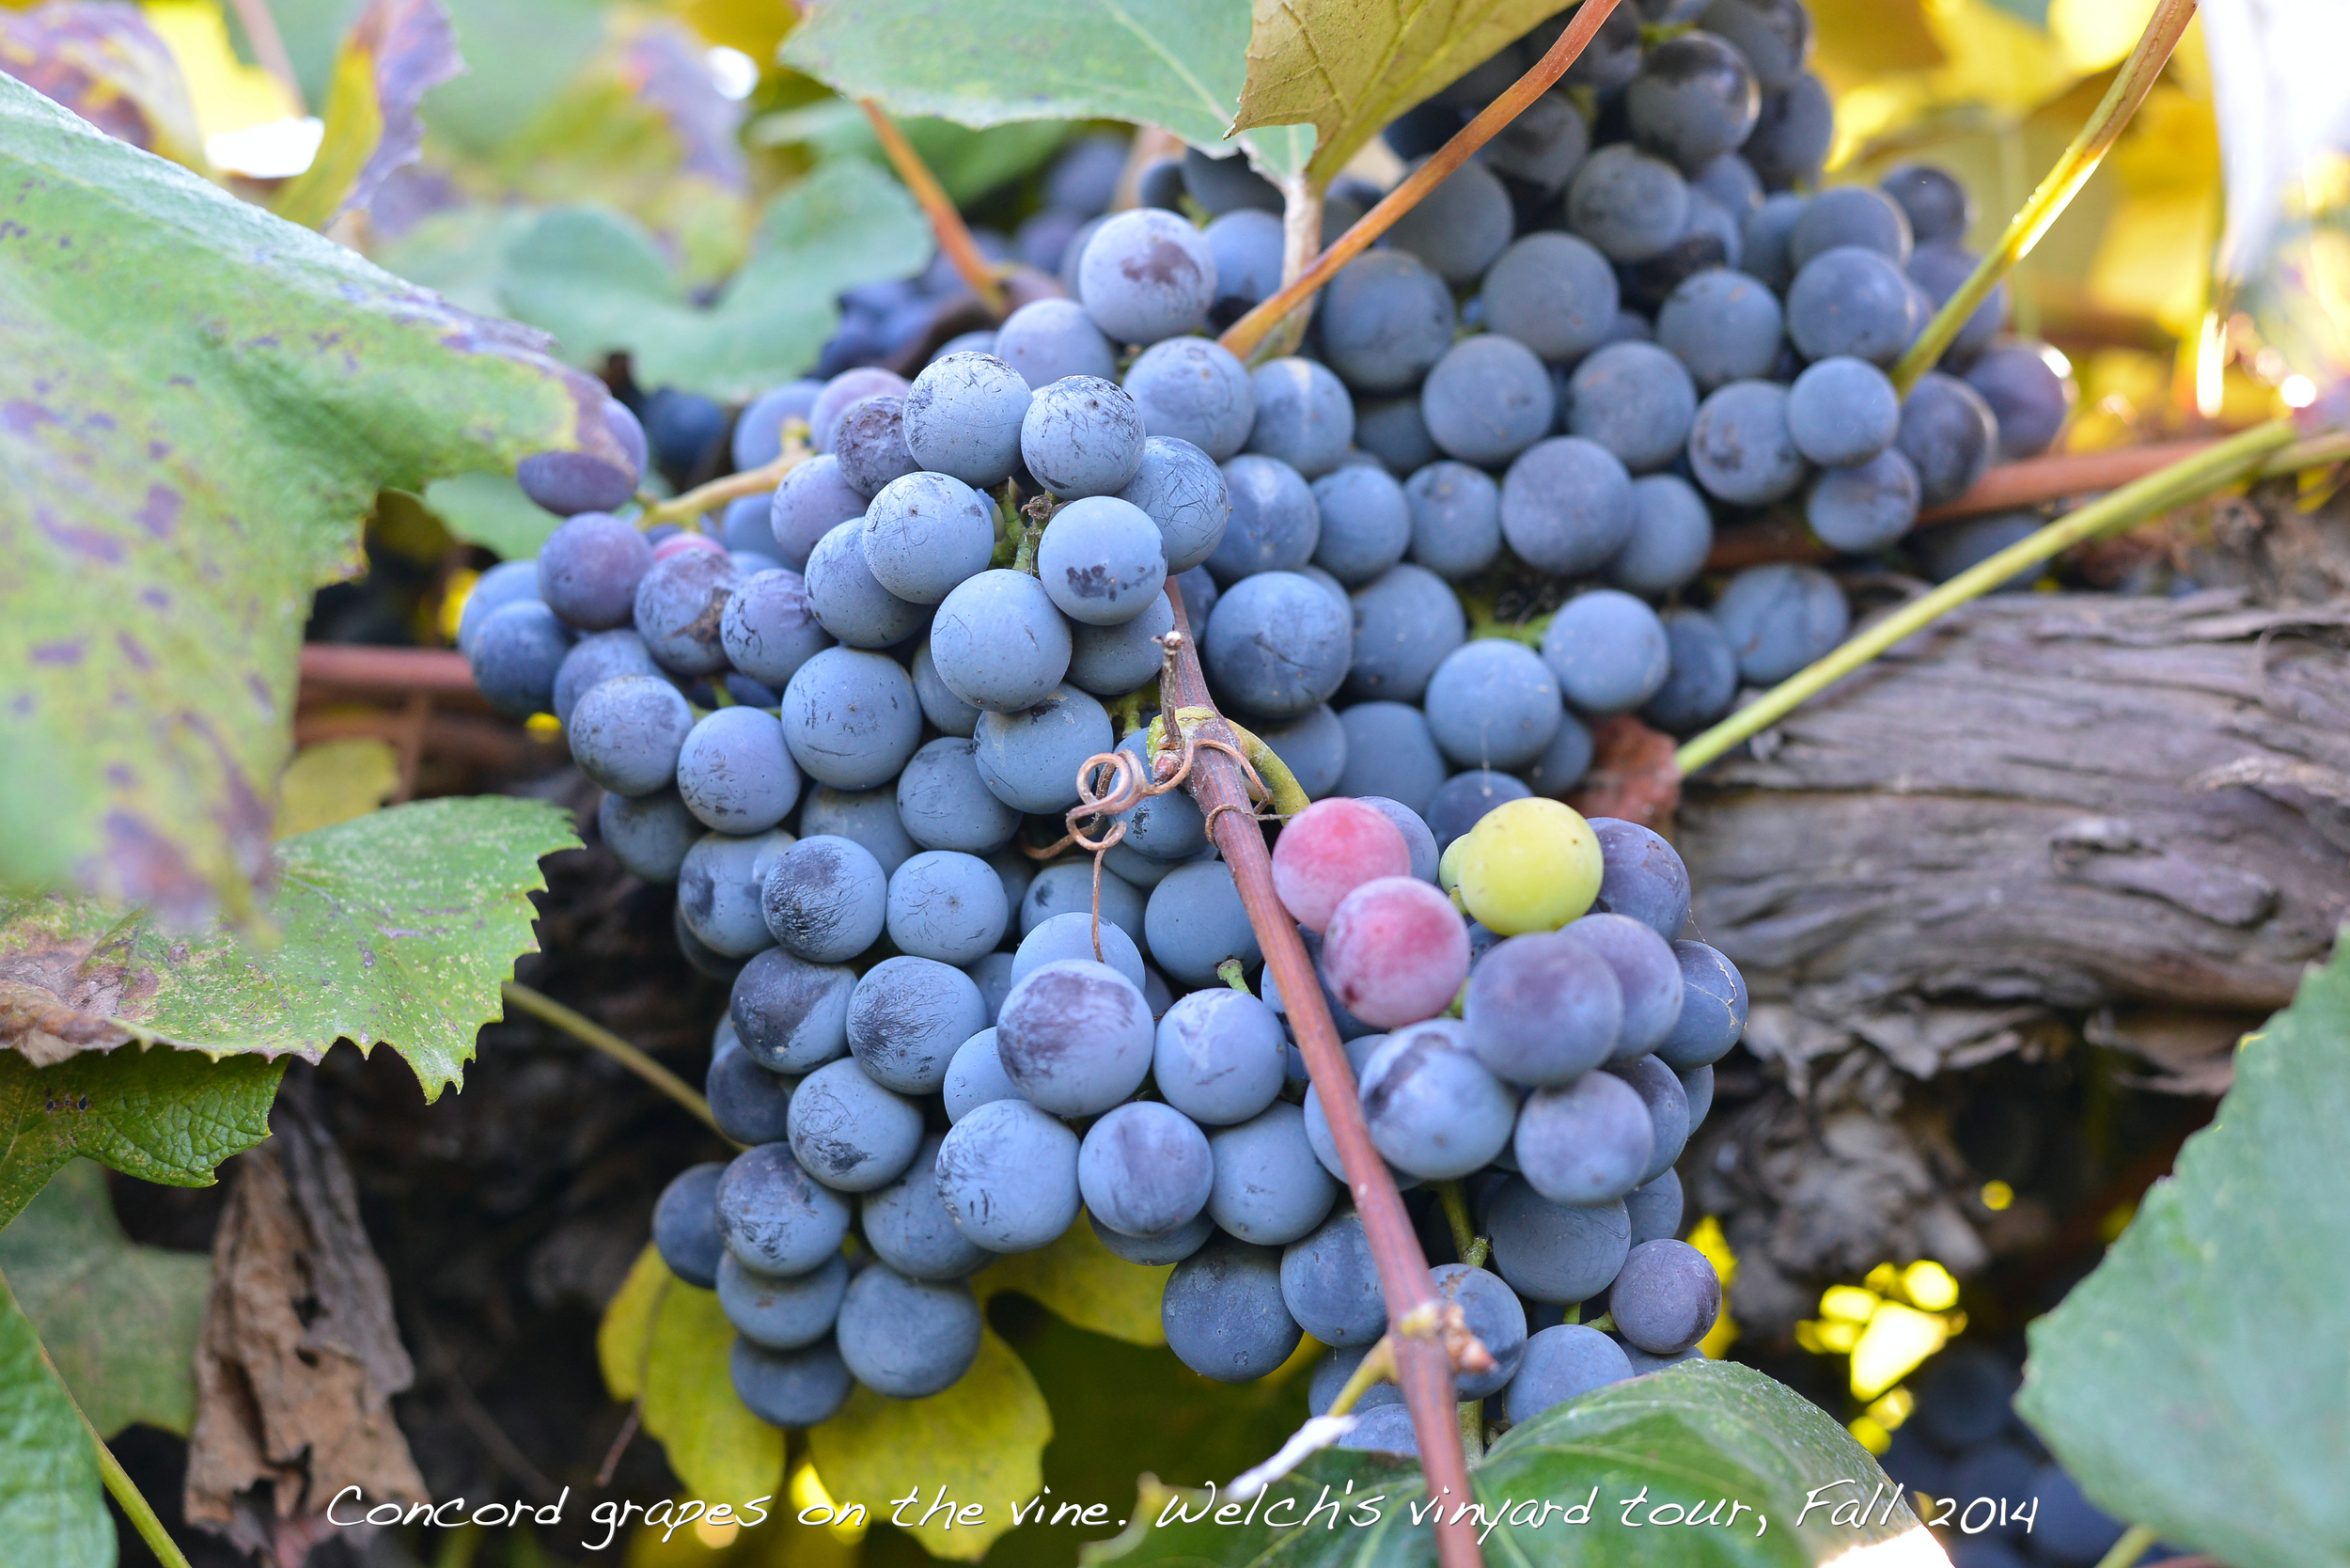 Concord grapes on the vine.